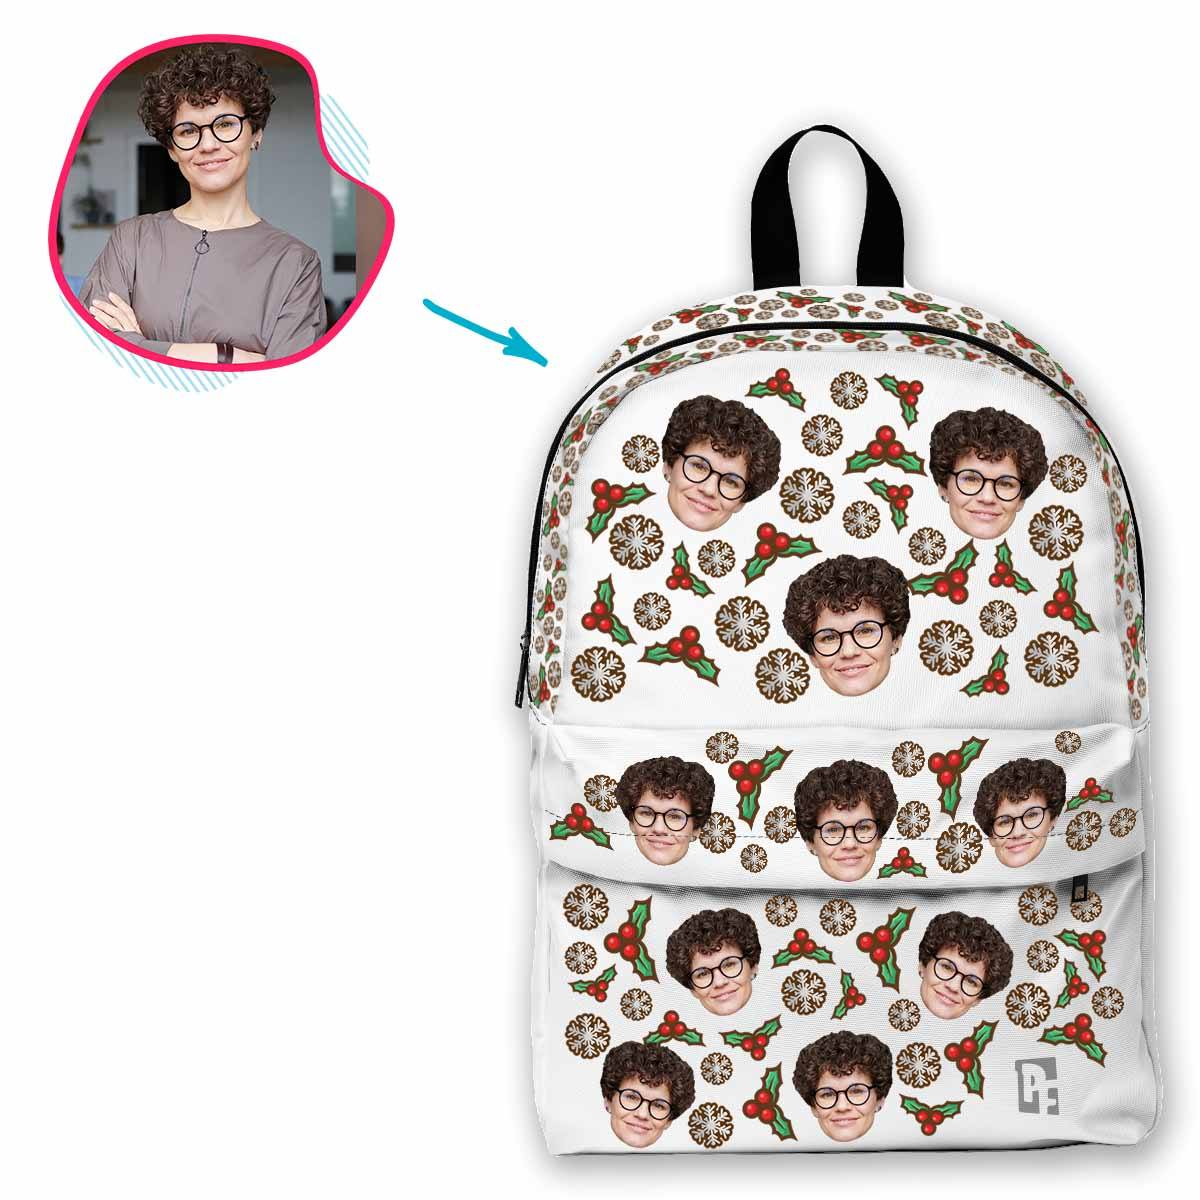 red Mistletoe classic backpack personalized with photo of face printed on it